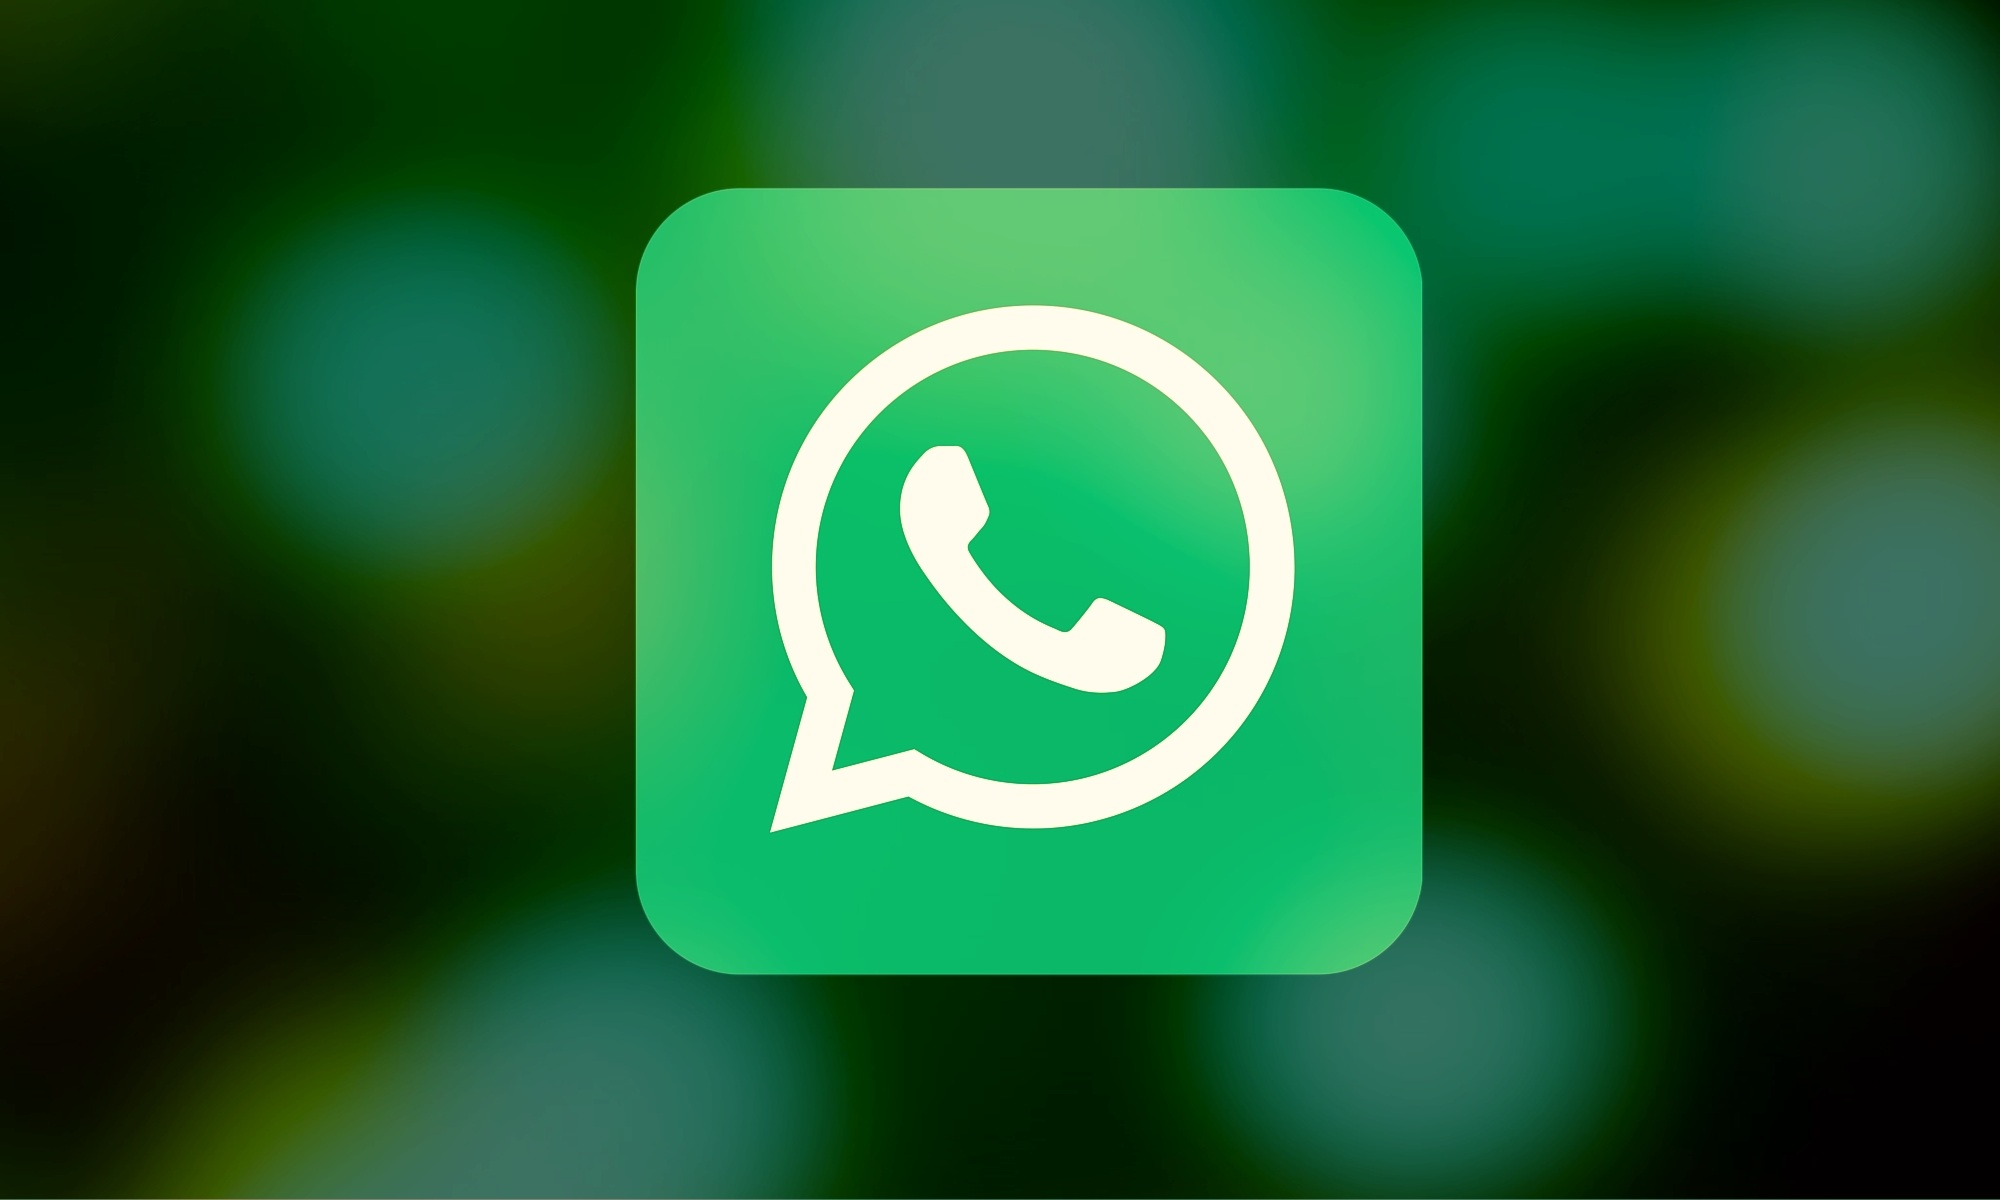 whatsapp download failed media file appears to be missing